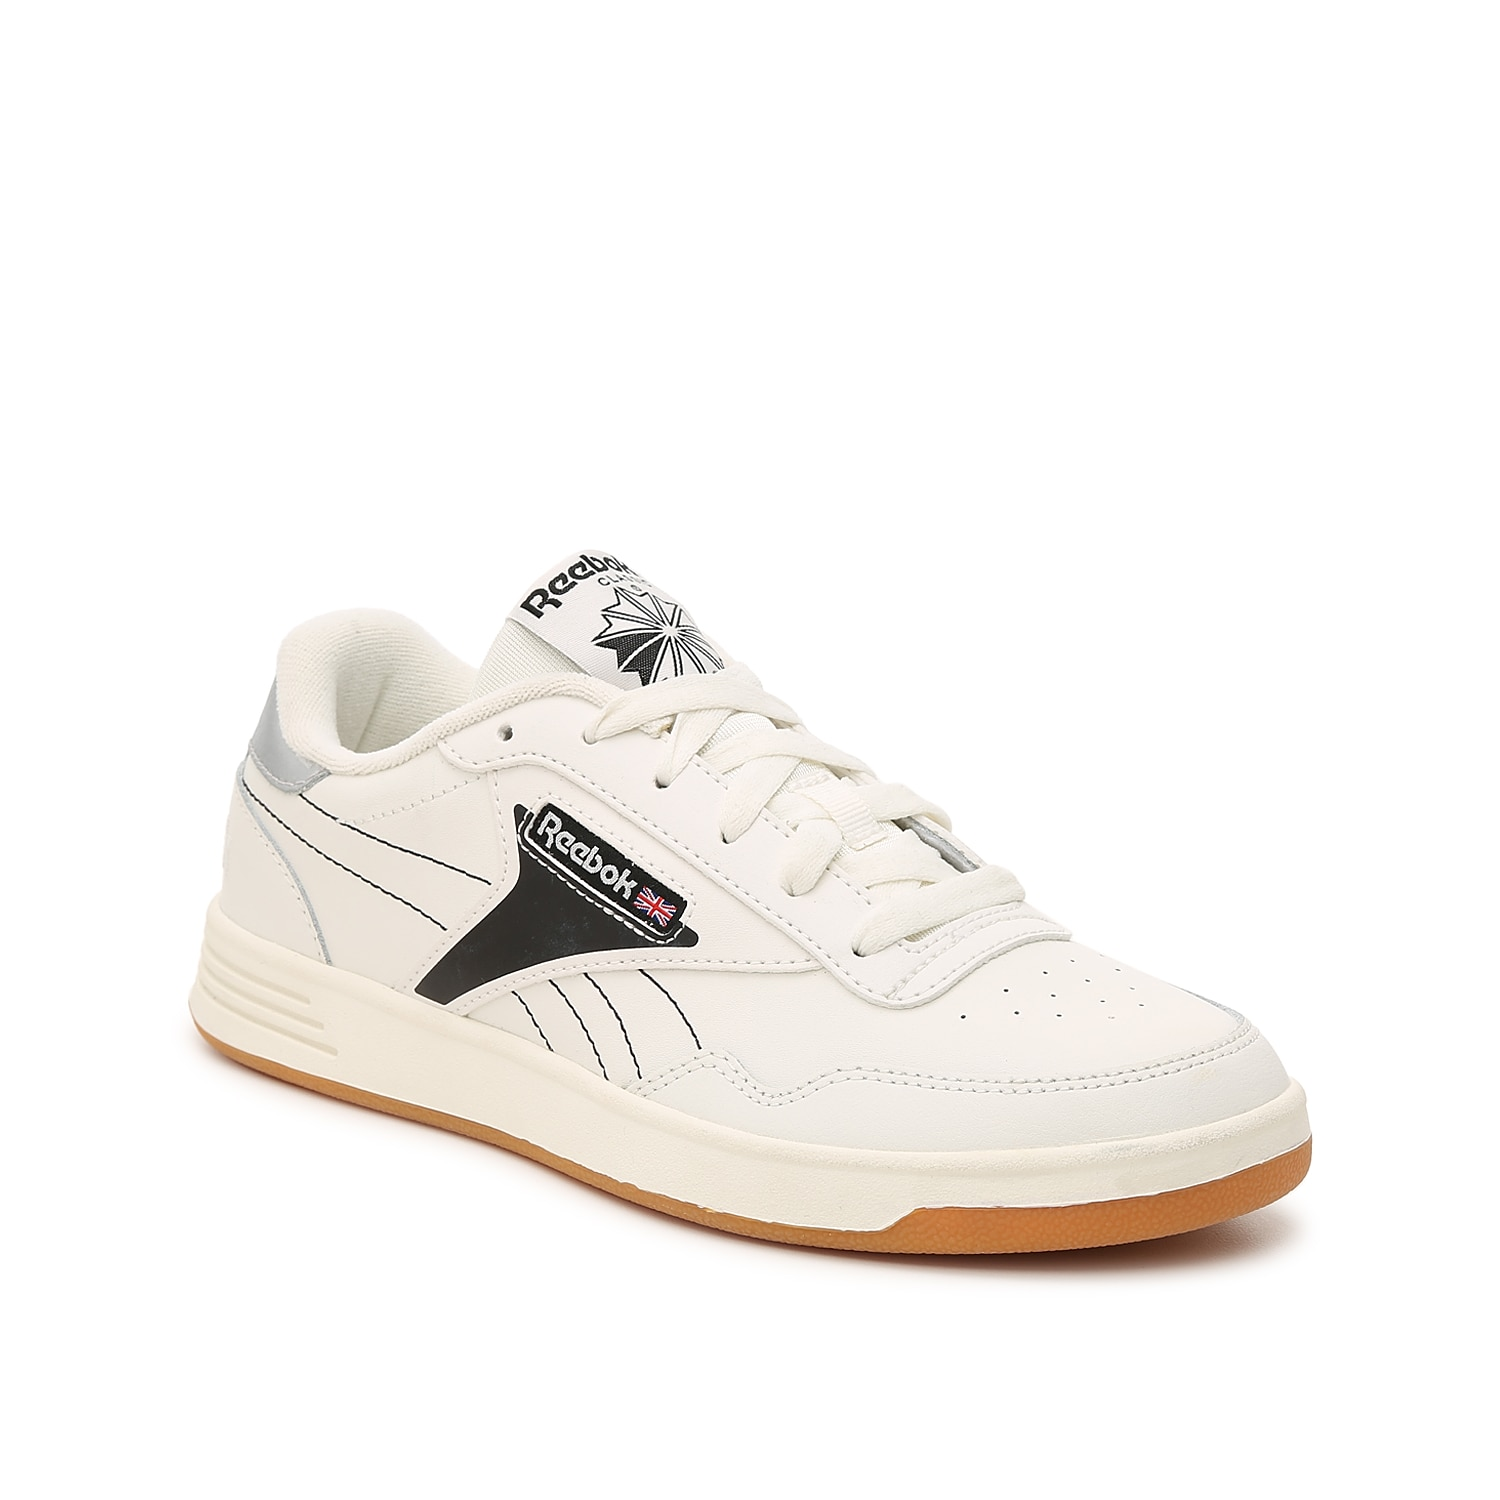 Show off retro-chic style with the Reebok Club Memt women\\\'s sneakers. These low-top joggers create a clean-and-crisp look that matches anything from skinny jeans to T-shirt dresses.